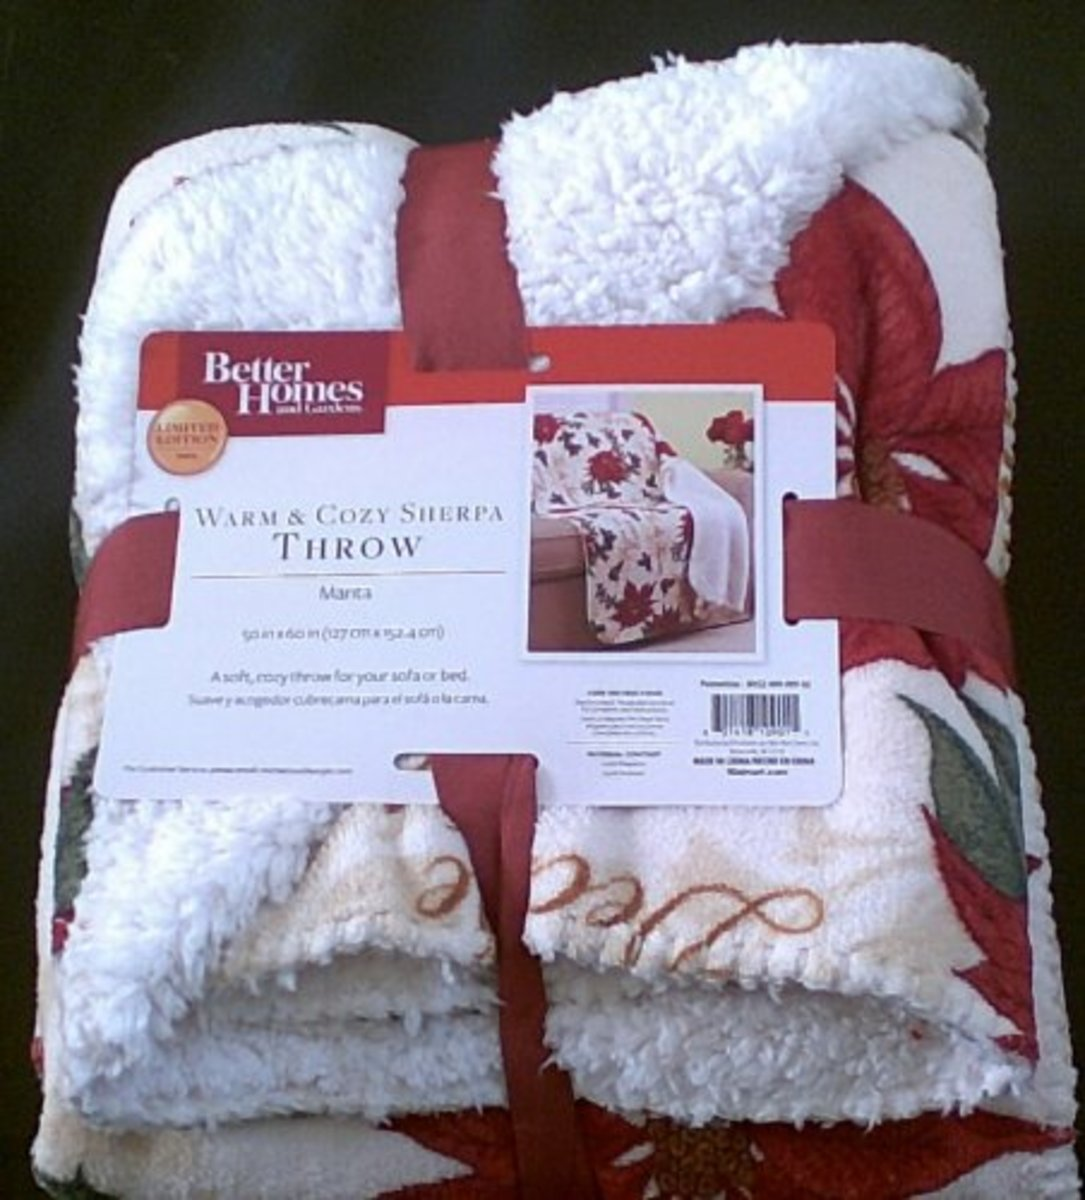 Beautiful reversible holiday throw that would make a wonderful gift or accessory for any décor. Right now it is on sale at almost half the price it is sold elsewhere.